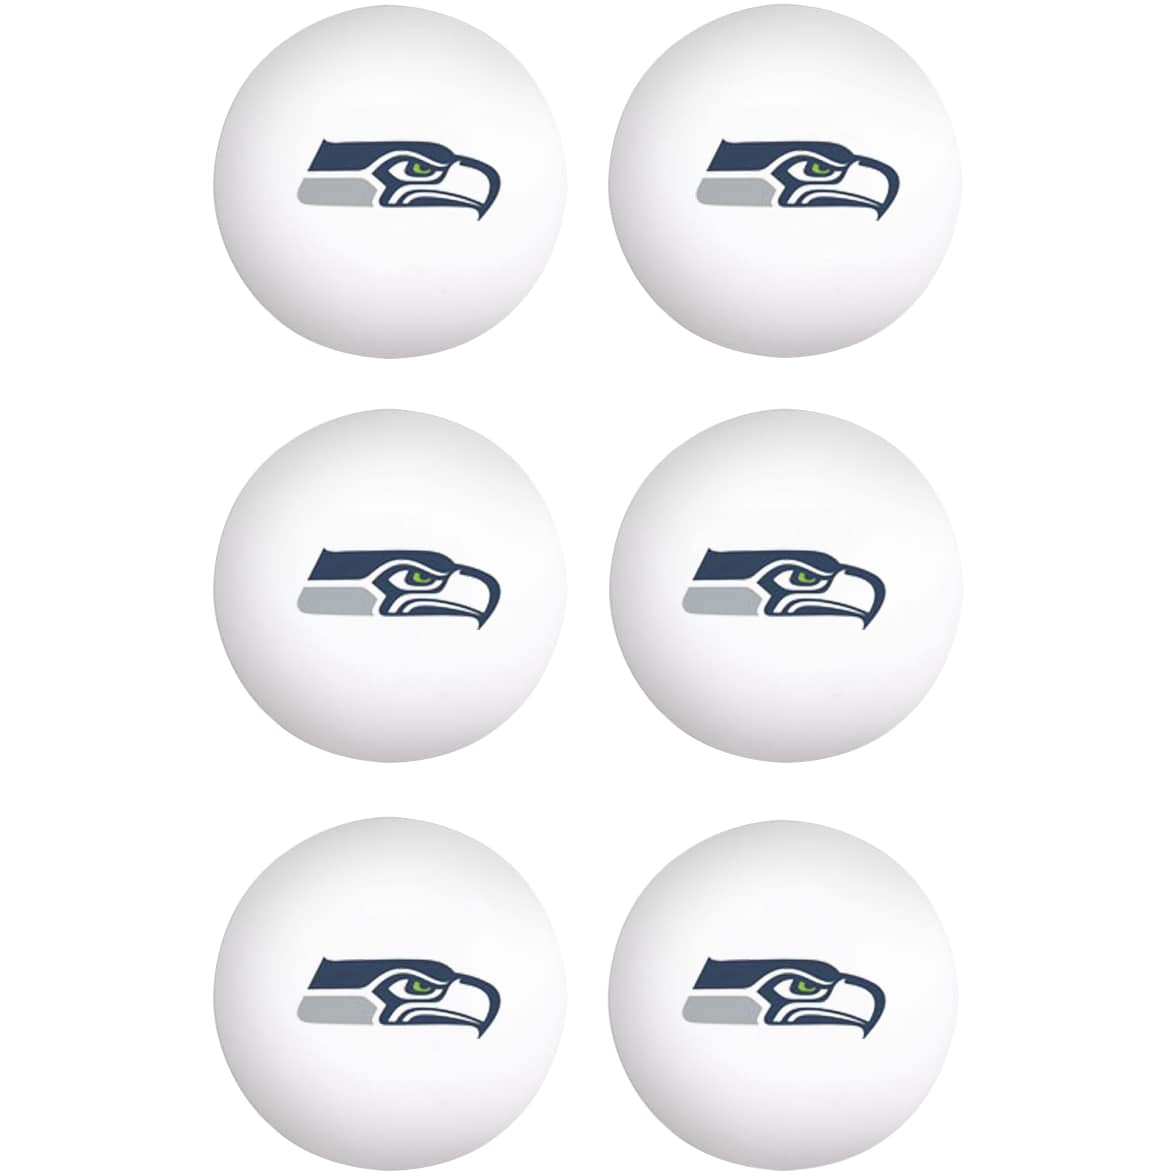 Seattle Seahawks WinCraft 6-Pack Table Tennis Balls